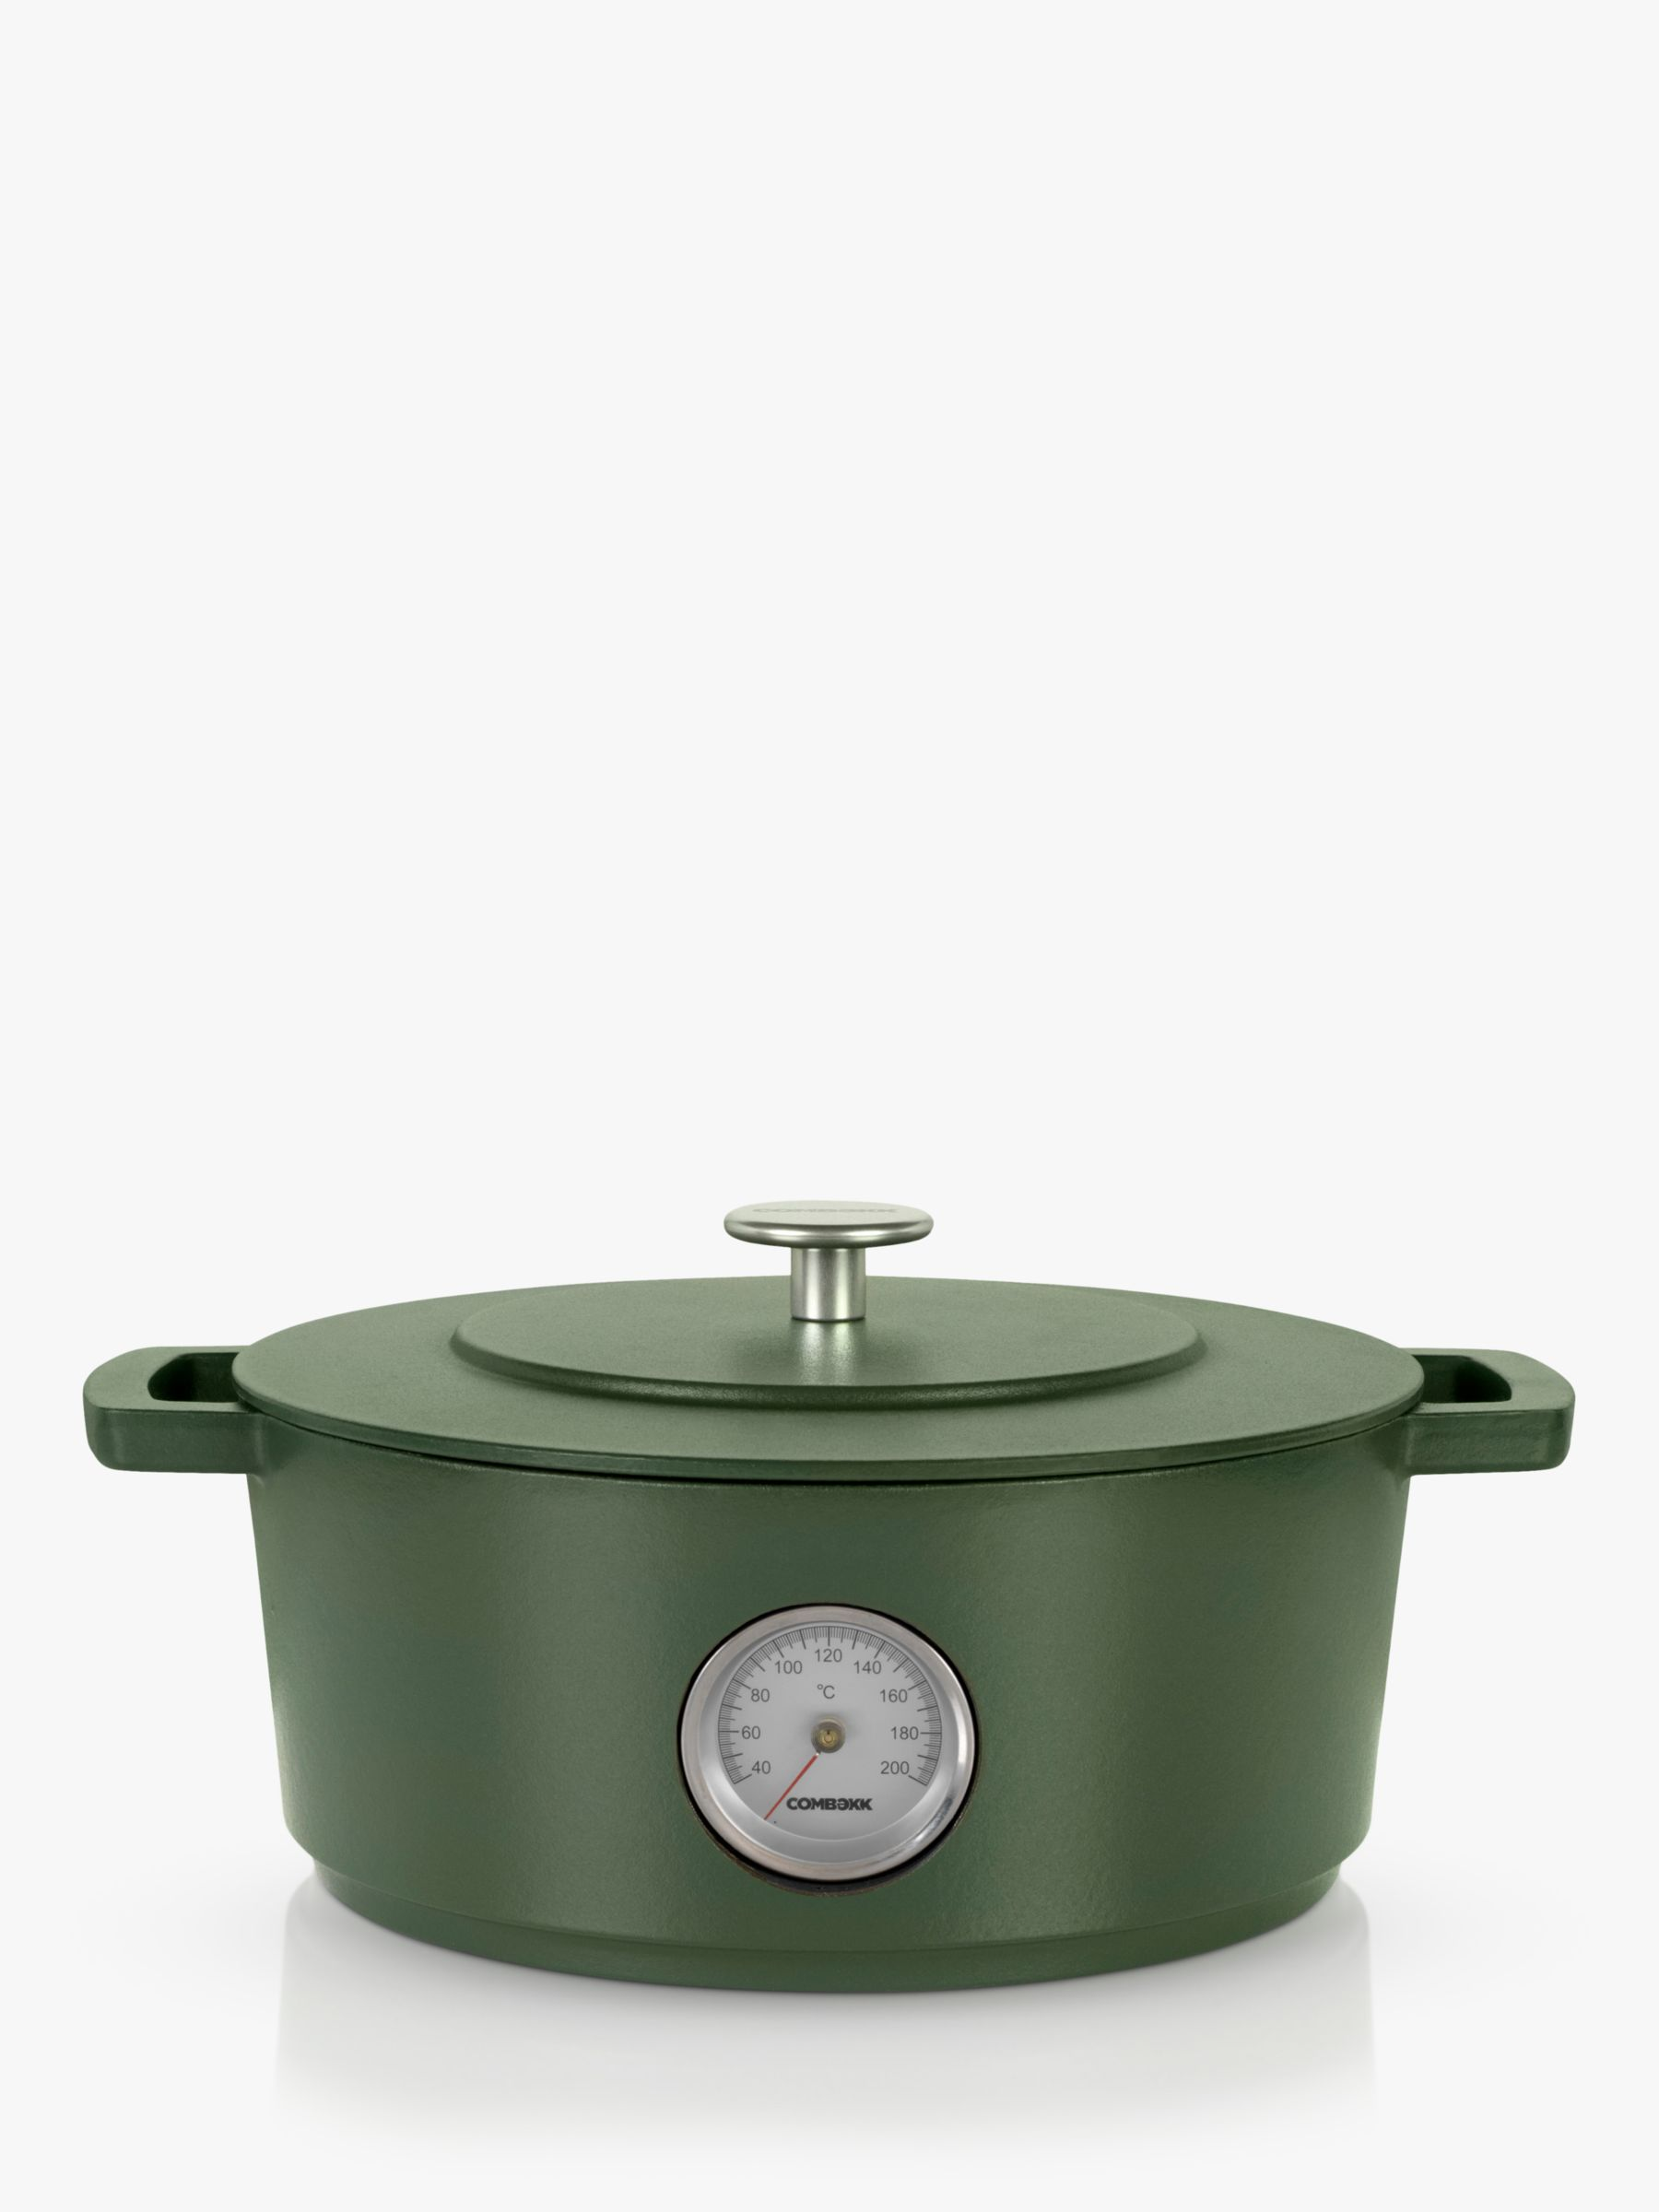 Combekk Recycled Cast Iron Dutch Oven Casserole with Thermometer, 28cm